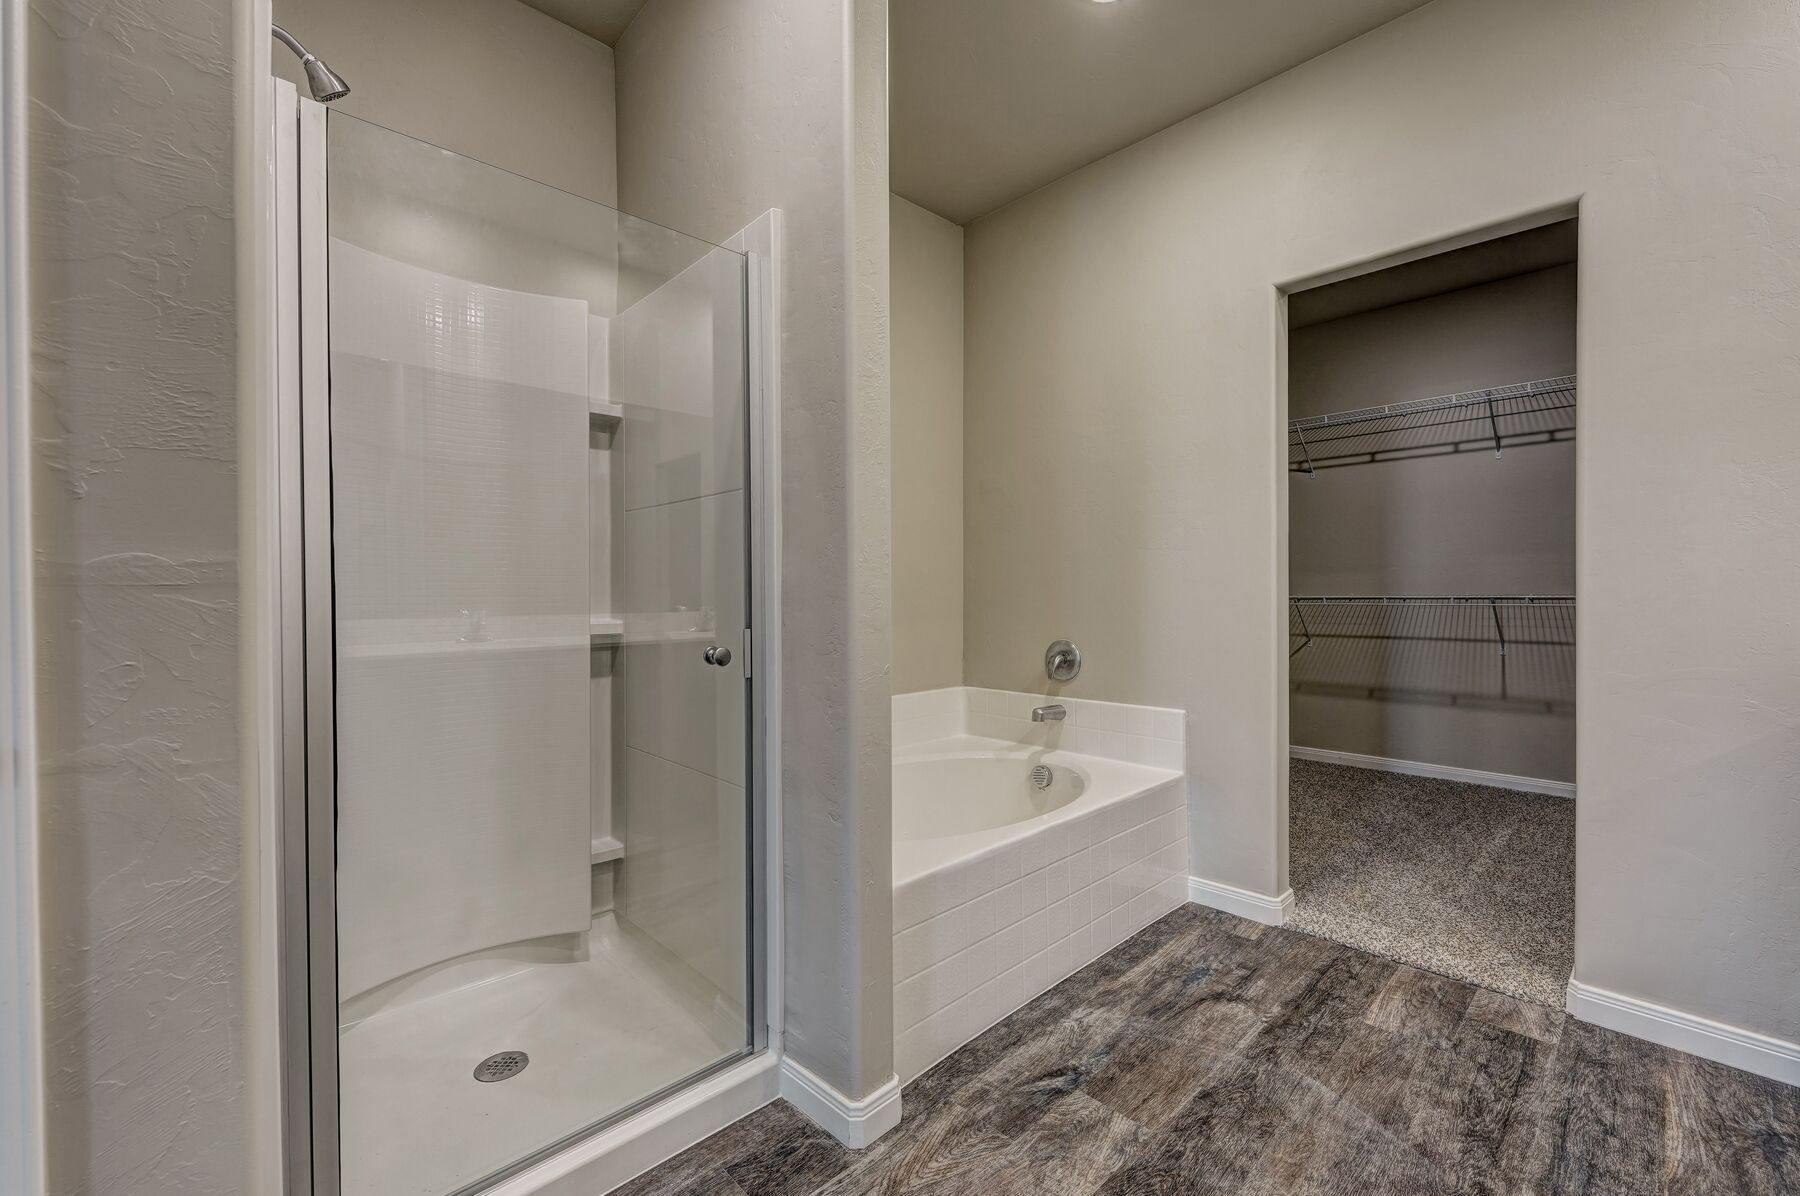 Bathroom featured in the Cypress By LGI Homes in Oklahoma City, OK